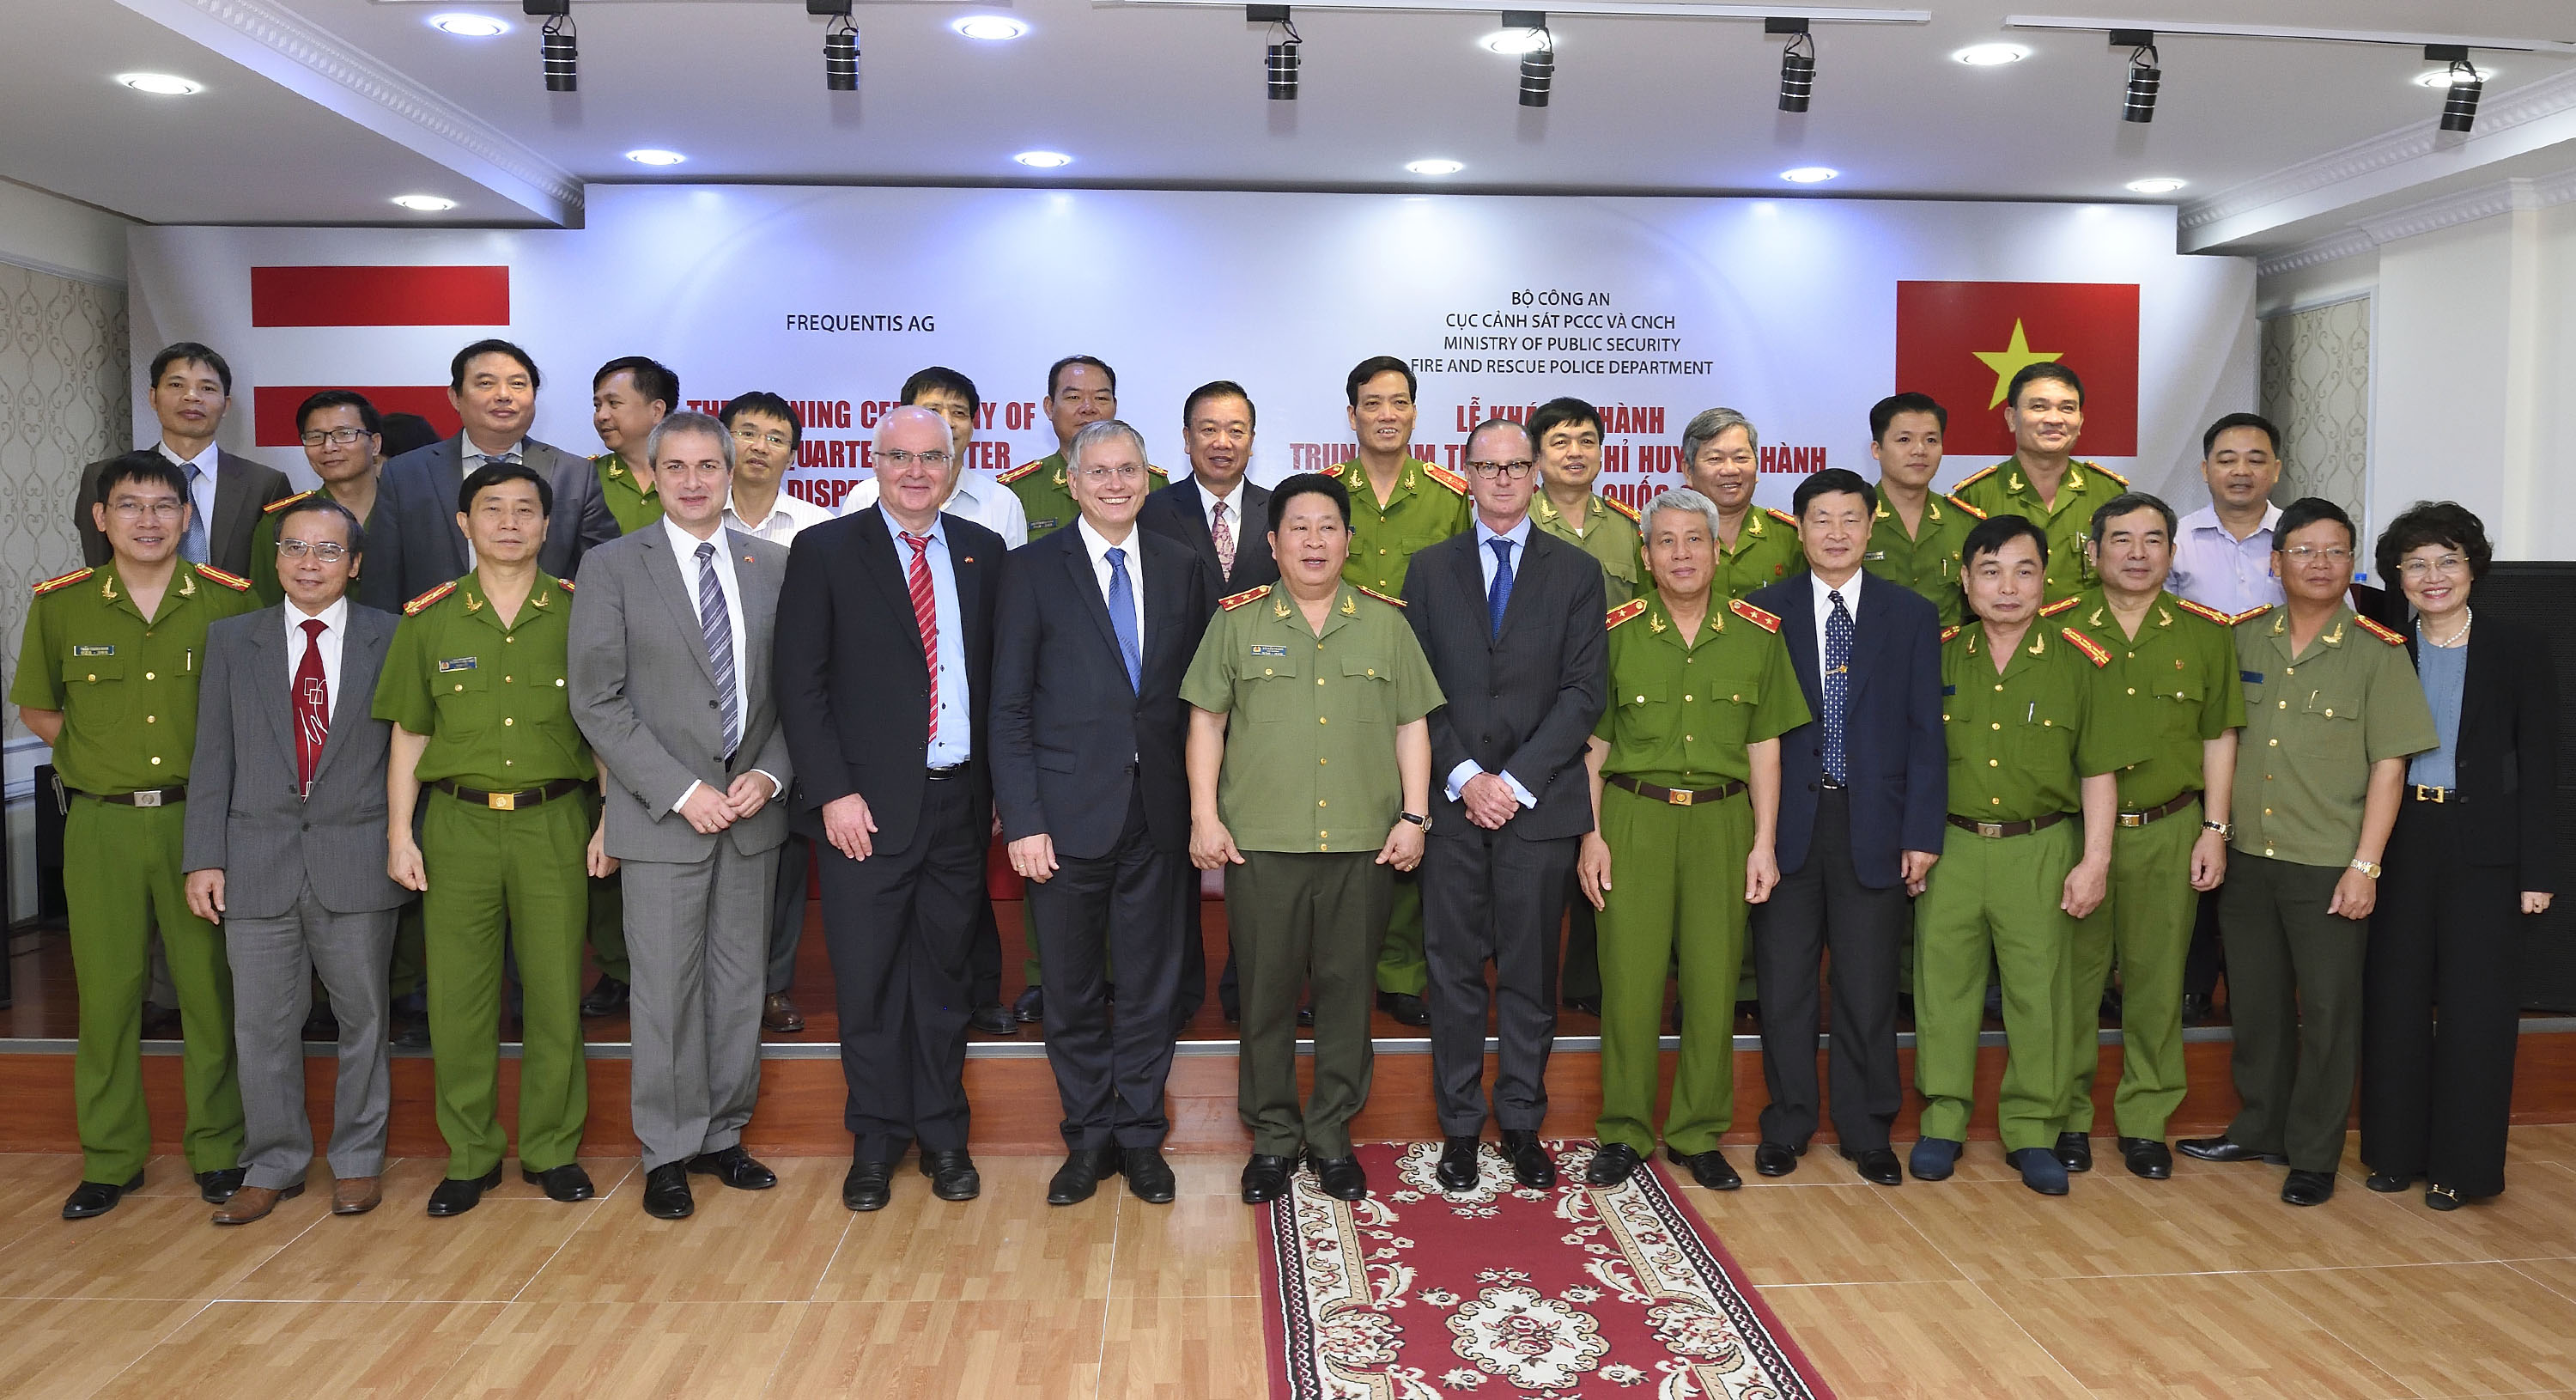 Austrian Federal Minister Alois Stöger inaugurates Fire Brigade Dispatch Center in Vietnam